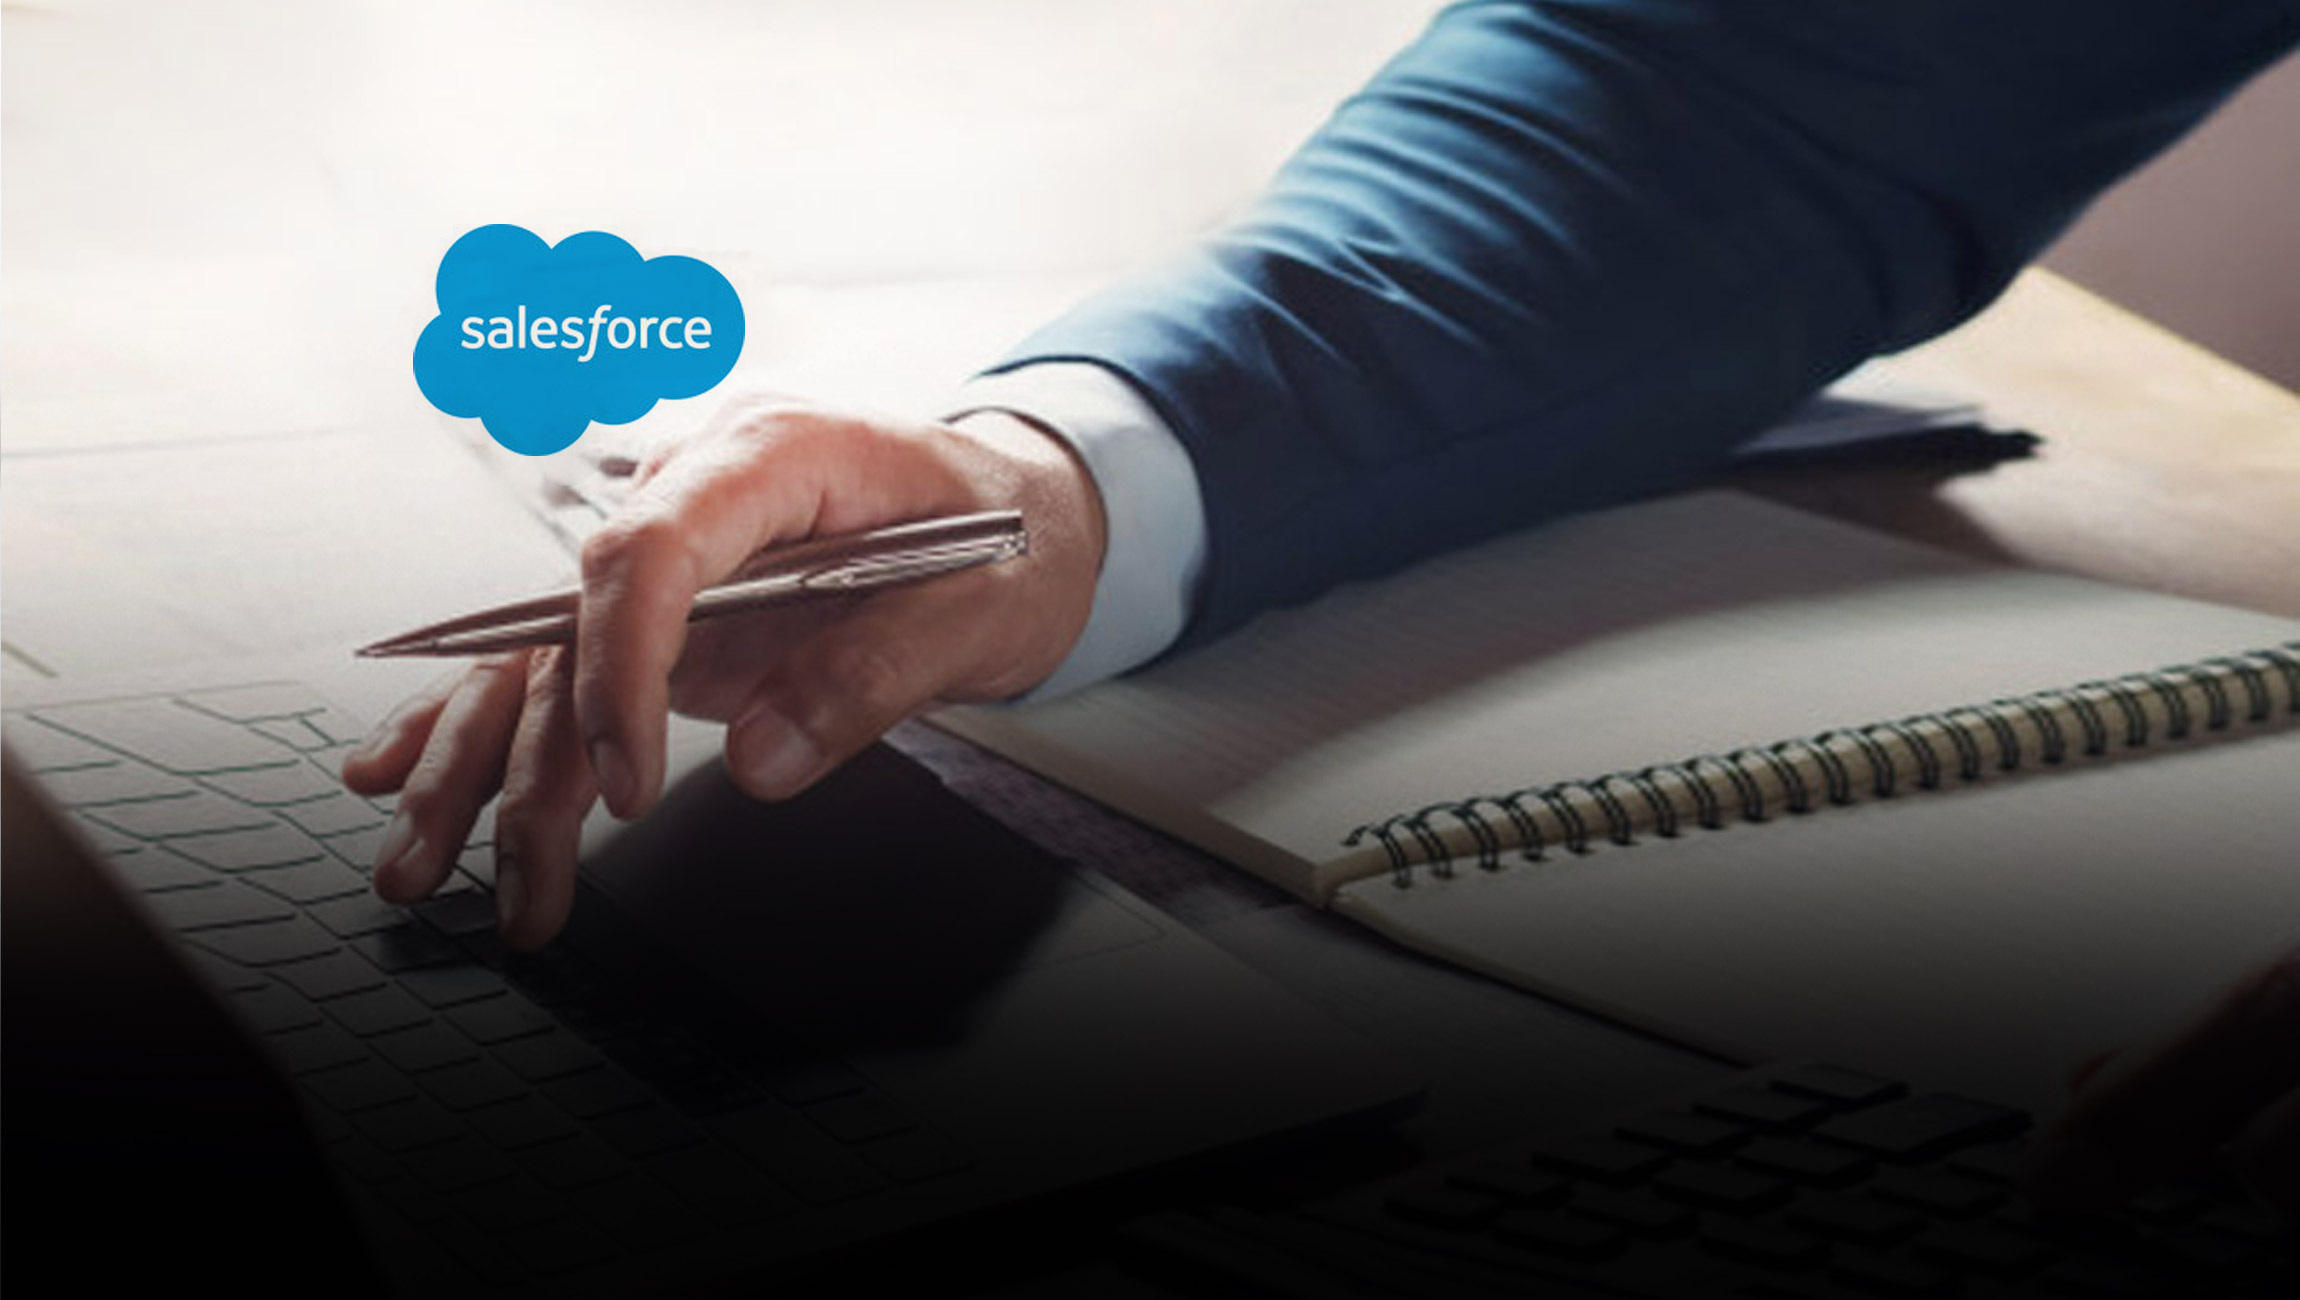 Salesforce Introduces Loyalty Management to Help Drive More Meaningful Customer Loyalty Experiences